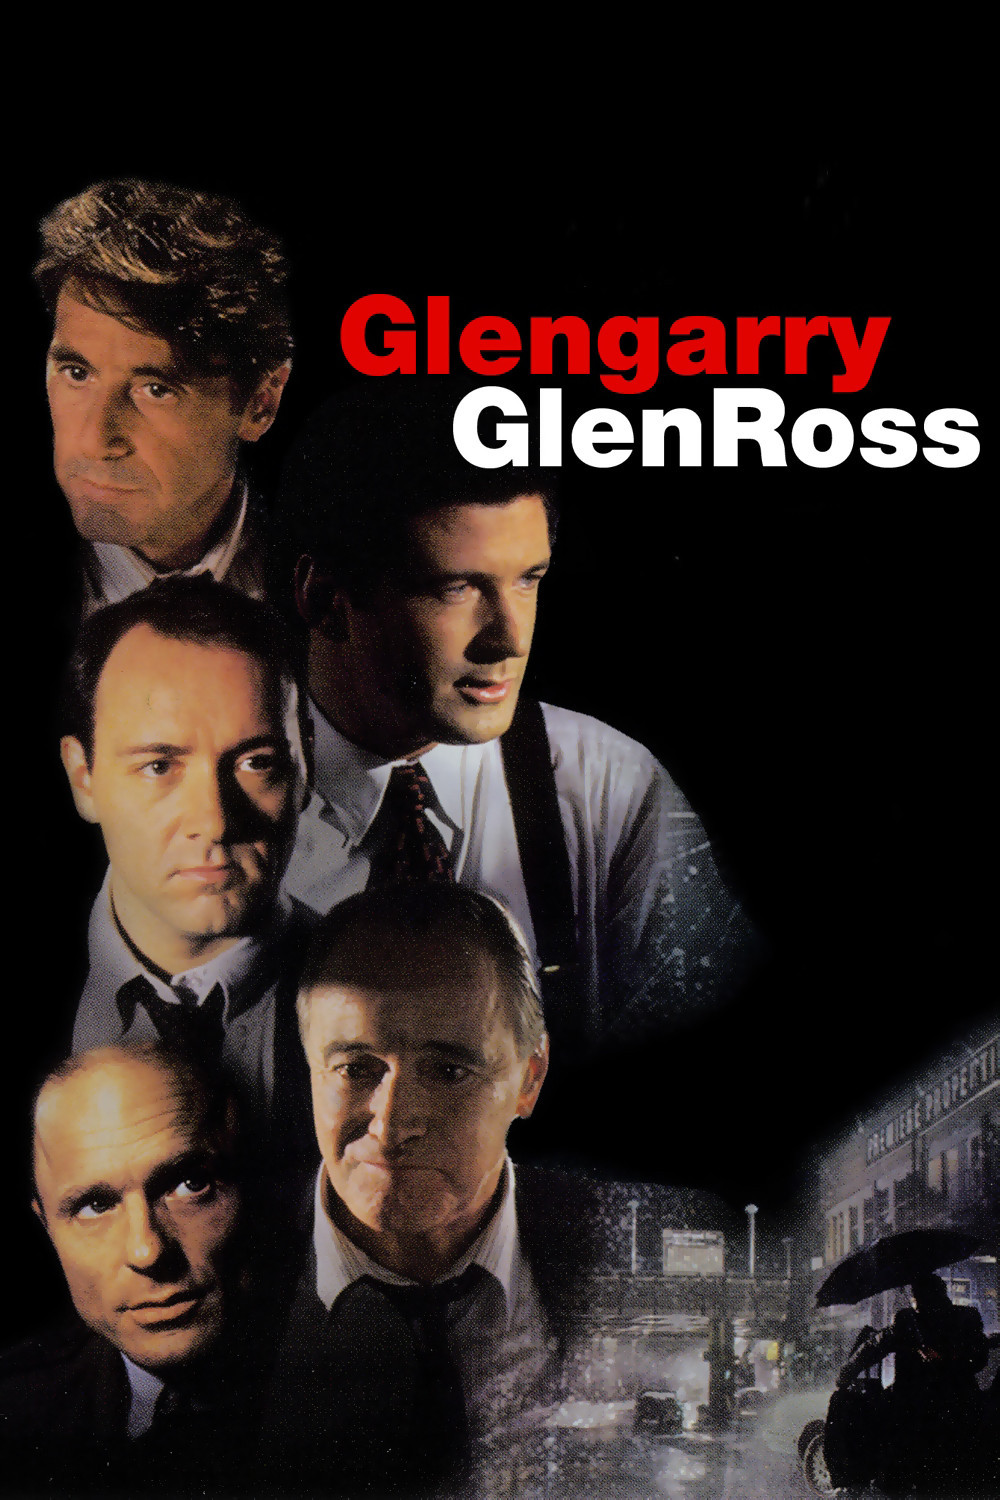 glengarry glen ross Glengarry glen ross was first presented at the cottlesloe theatre, london, england on september 21, 1983 it was directed by bill bryden now playing community.